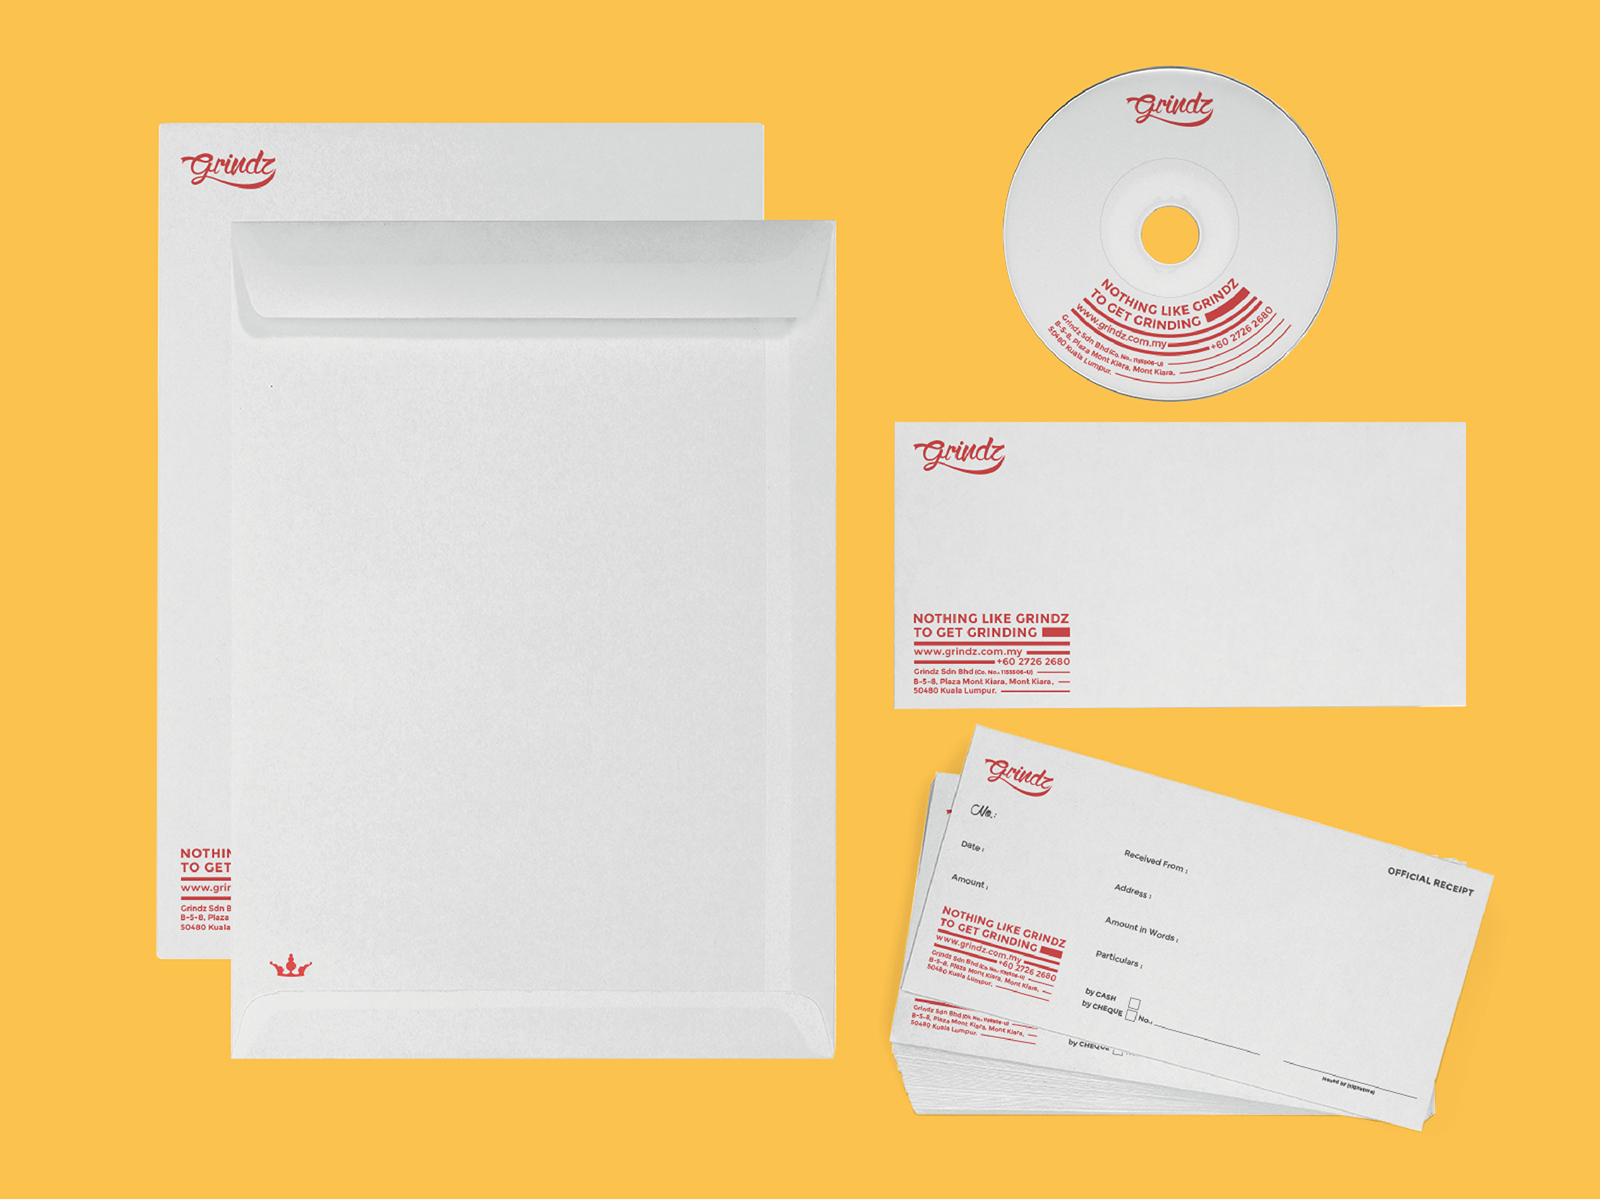 Grindz supplement brand collaterals design featuring envelope, receipt and CD sticker with thick to thin lines to show weight loss